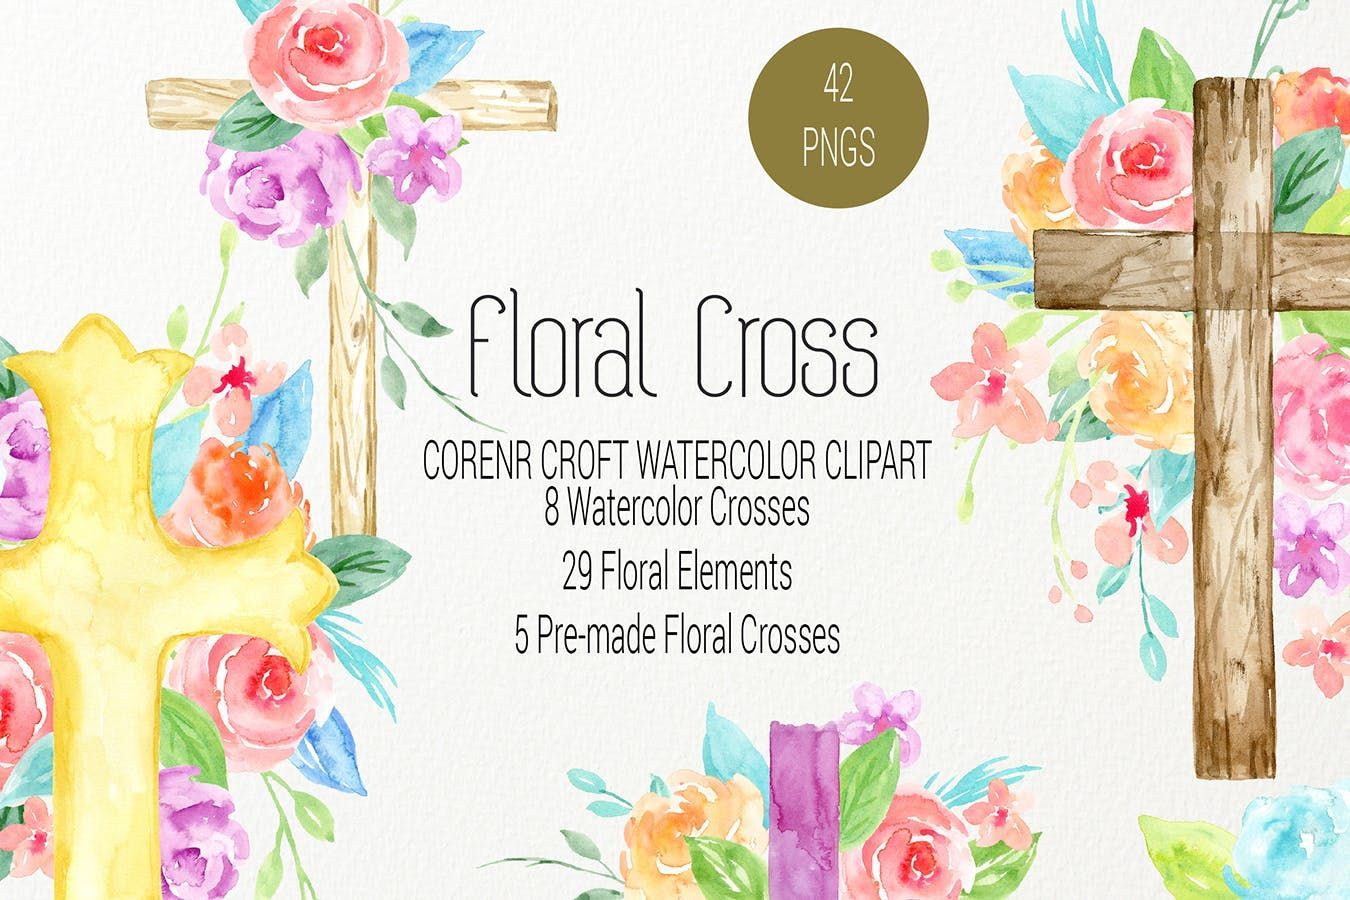 Watercolor Clipart Floral Cross By Cornercroft On Envato Elements